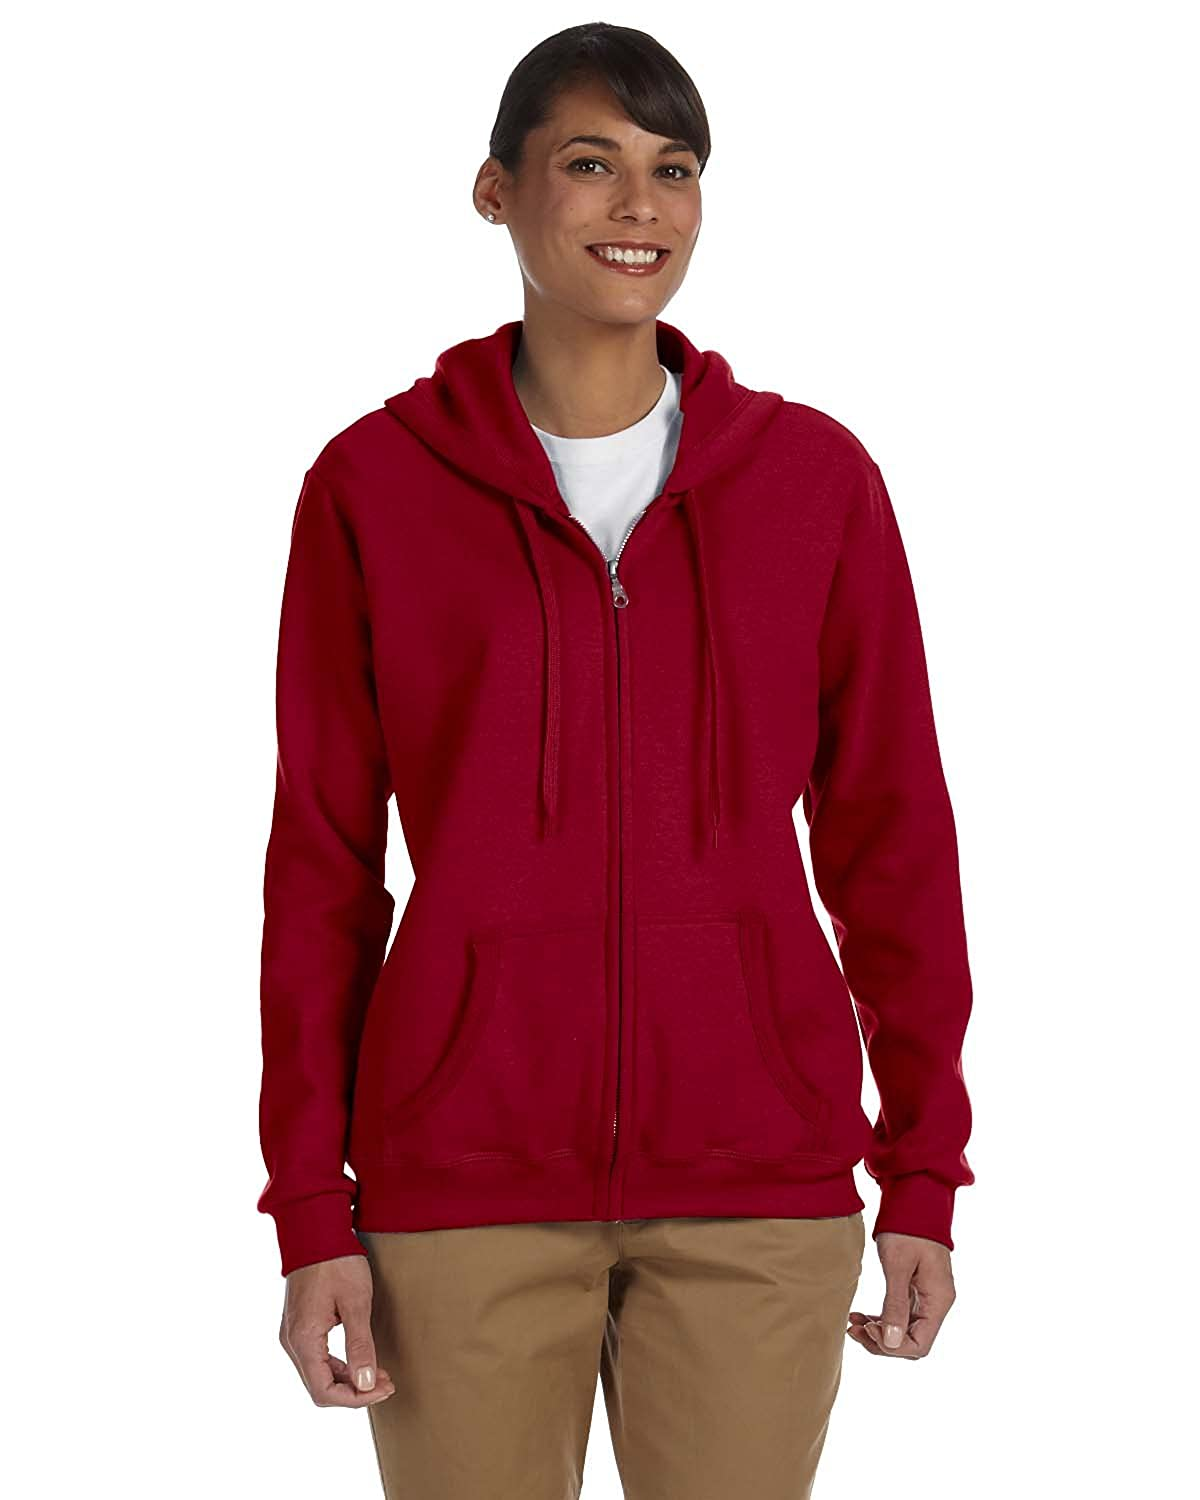 Gildan Heavy Blend Ladies Full-Zip Hooded Sweatshirt